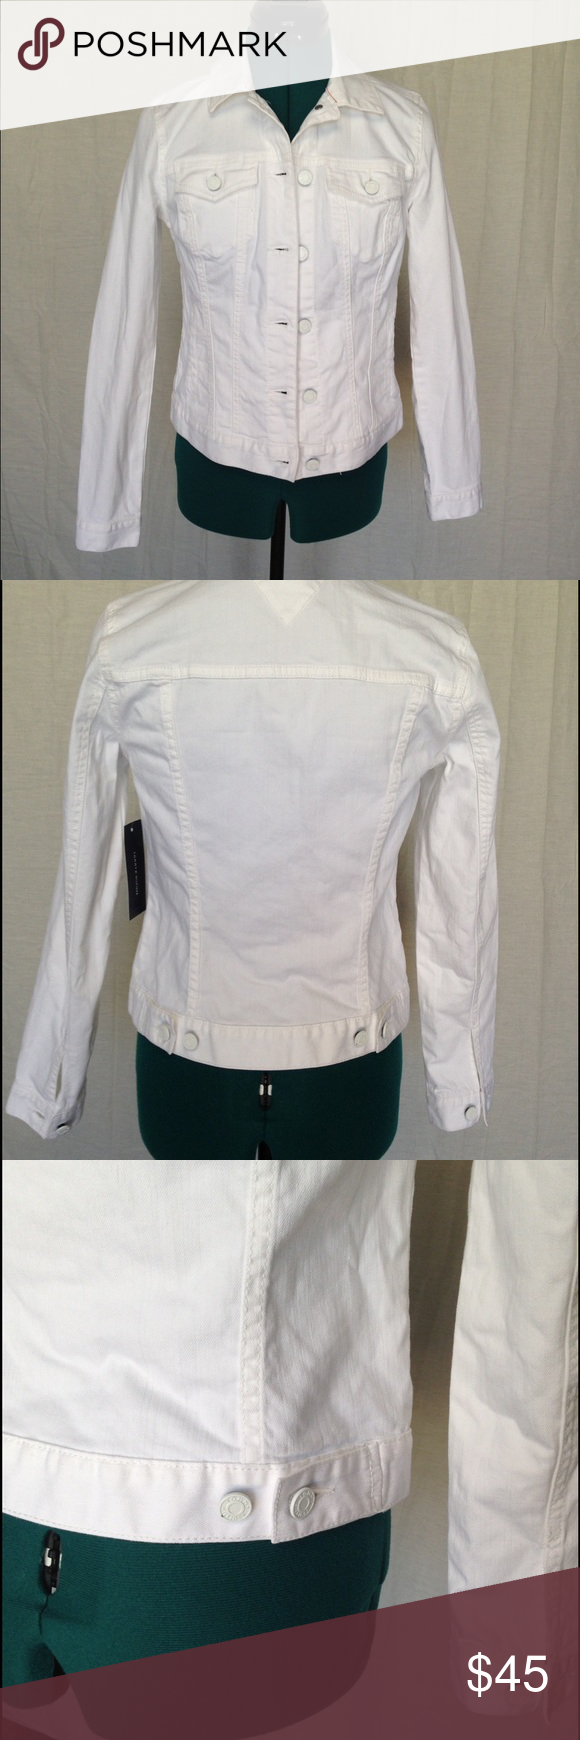 e2c5132393f Tommy Hilfiger white denim jacket women s xs New with tags Tommy Hilfiger  denim jacket. Very flattering and form fitting. White in color.